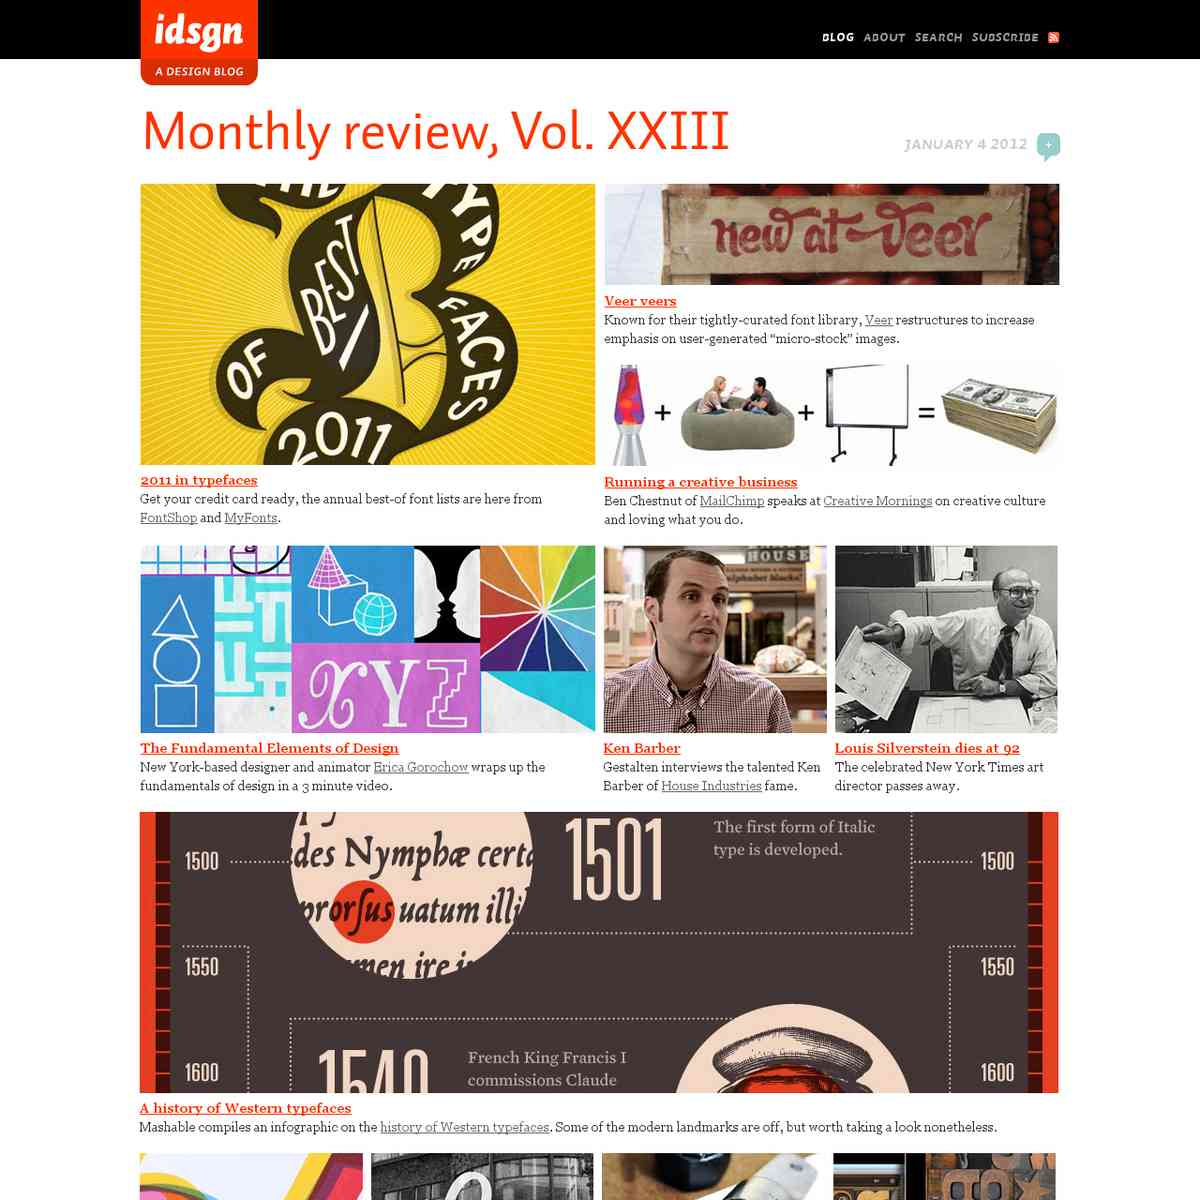 Monthly review, Vol. XXIII: idsgn (a design blog)